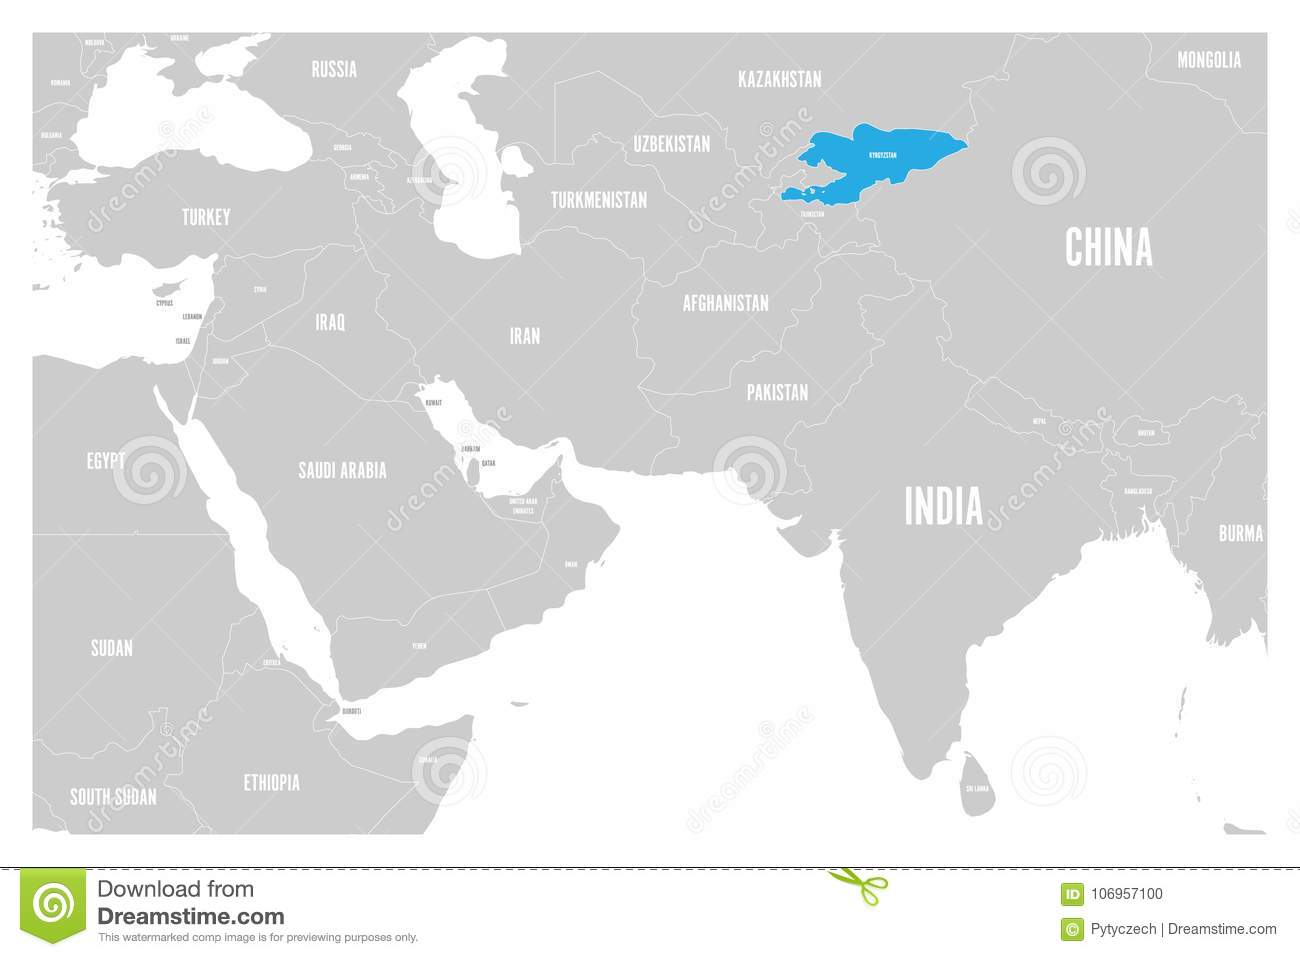 Kyrgyzstan Blue Marked In Political Map Of South Asia And Middle ...